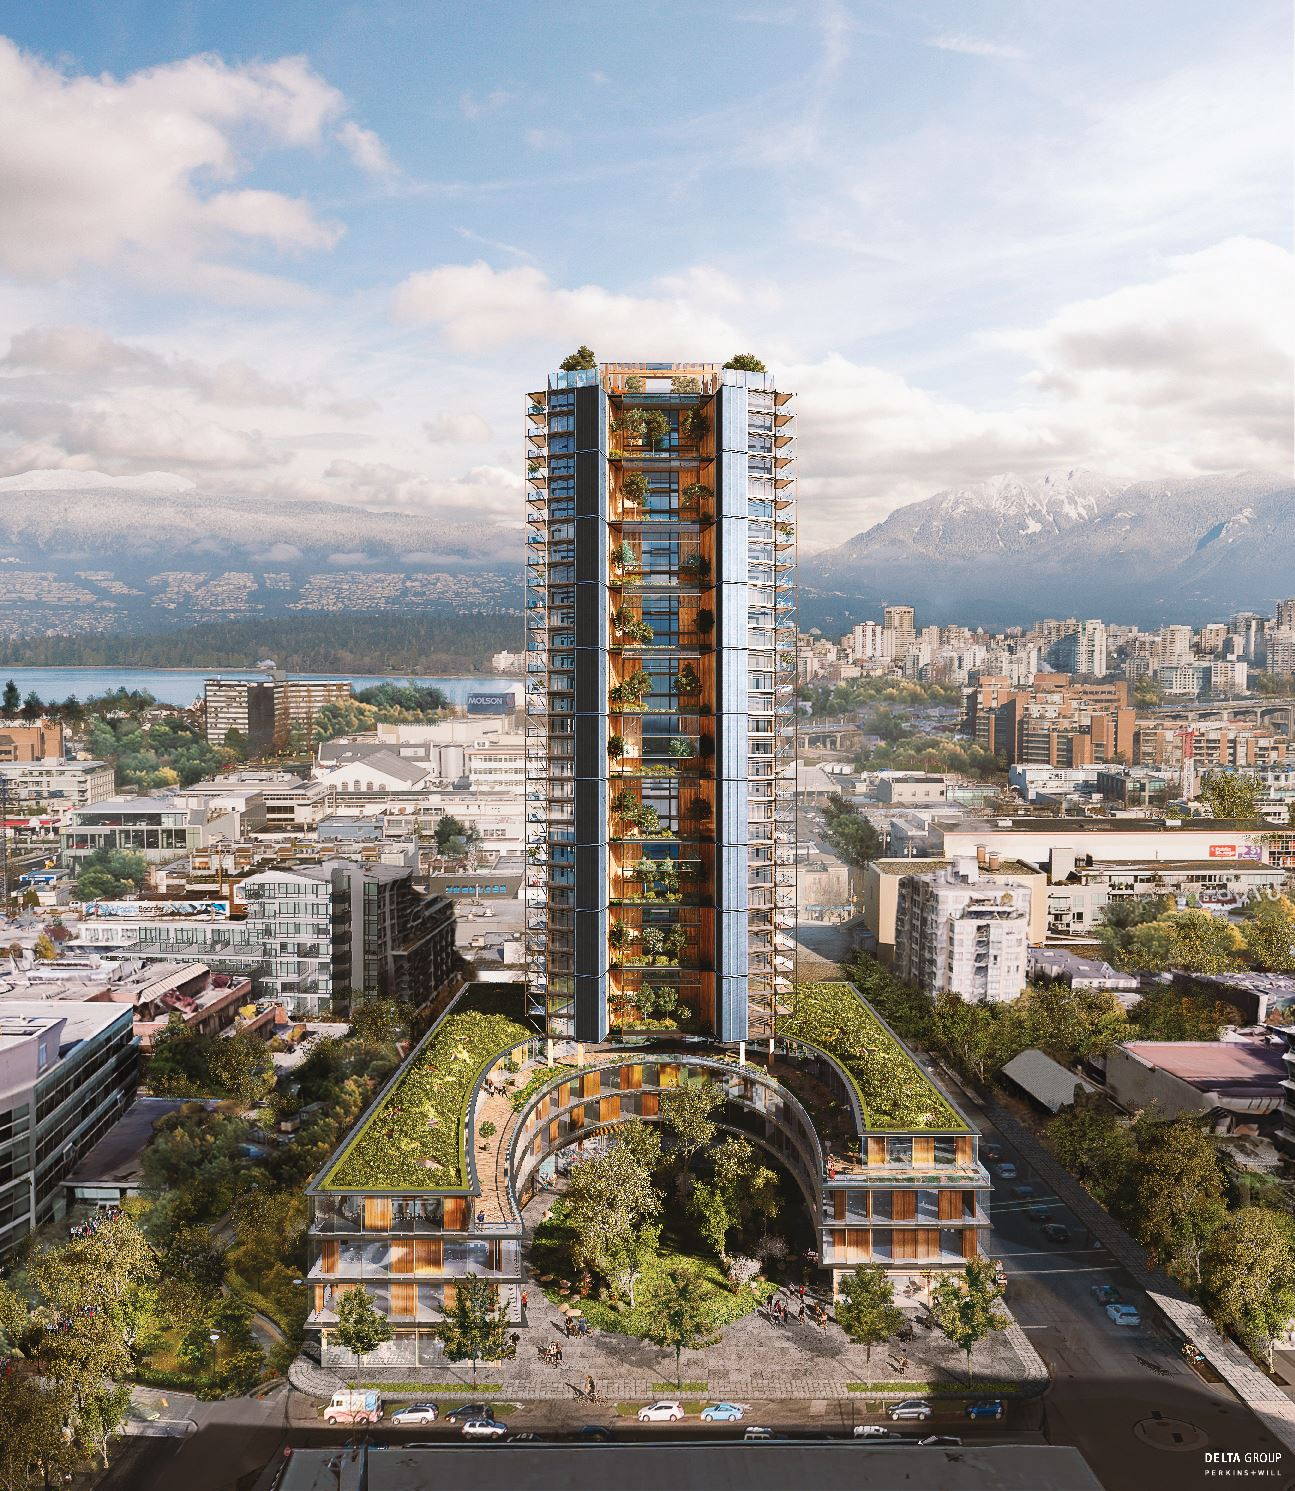 Pineview Mass Timber tower Vancouver